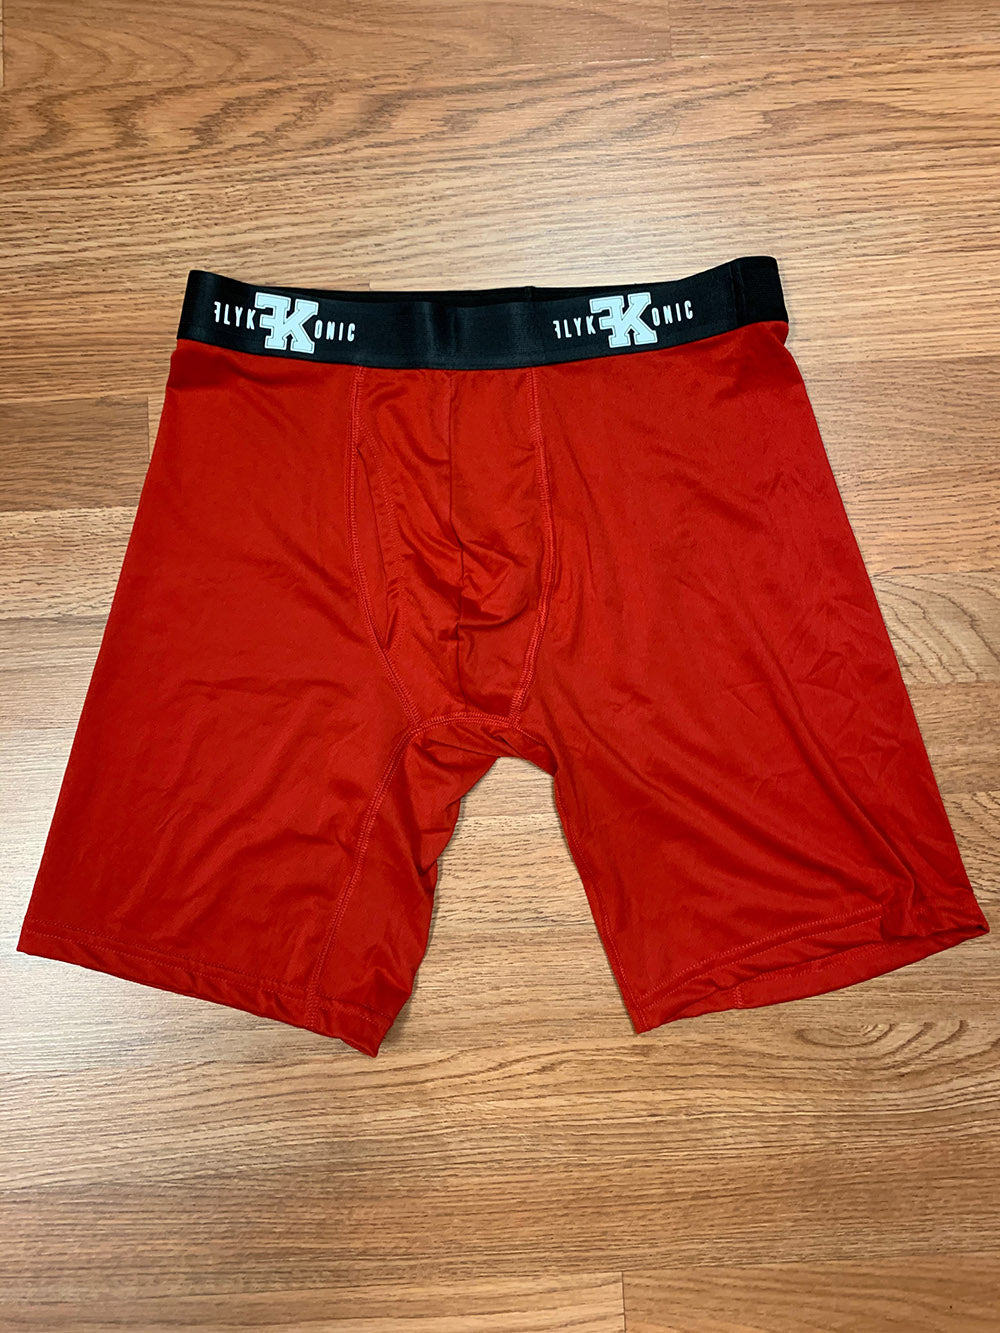 Flykonic Boxer Briefs in Red